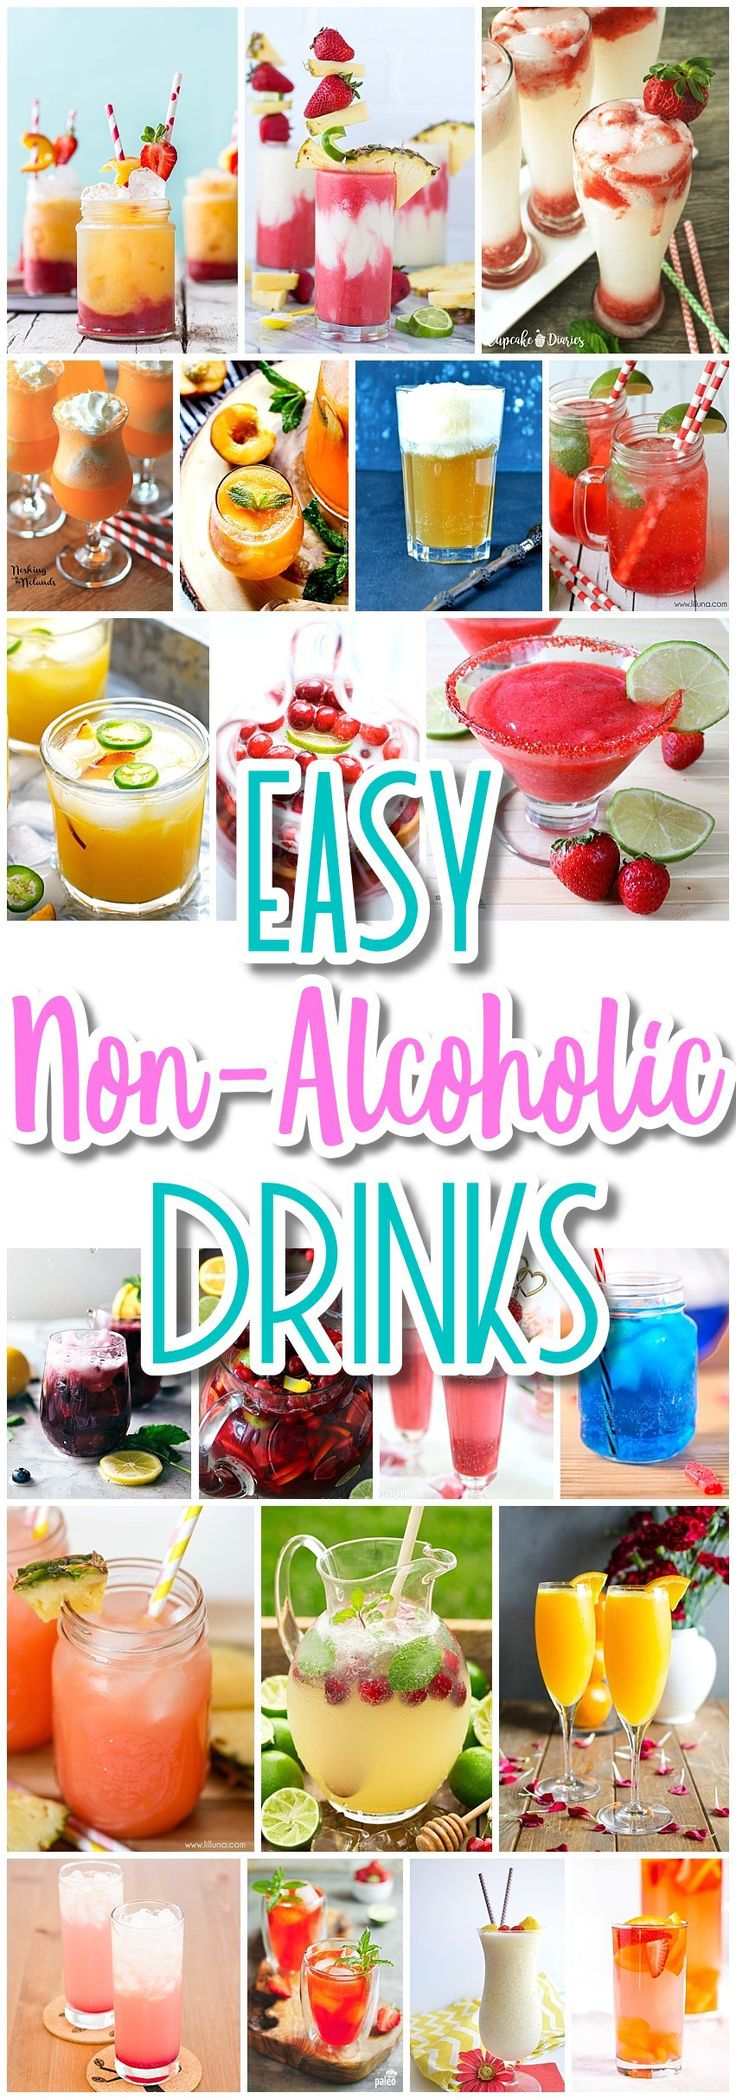 The 25 Best Party Drinks Ideas On Pinterest Alcoholic